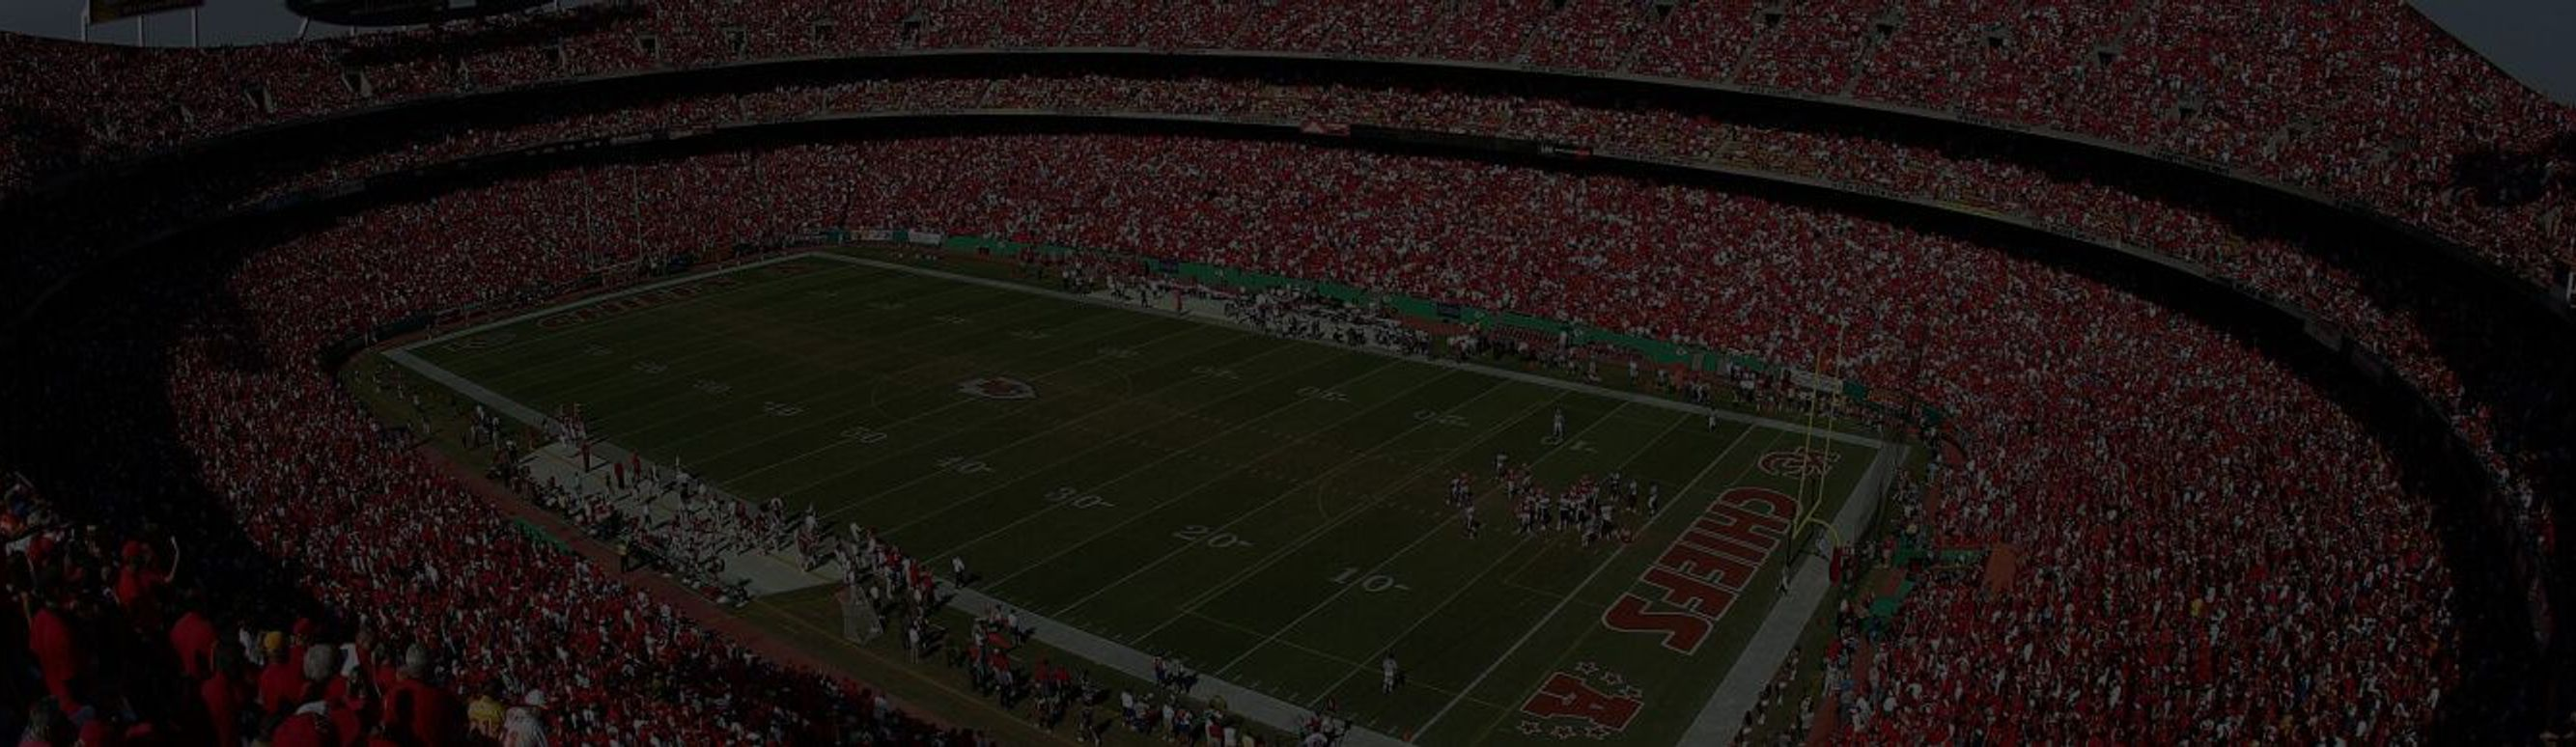 Houston Texans v Kansas City Chiefs at Arrowhead Stadium